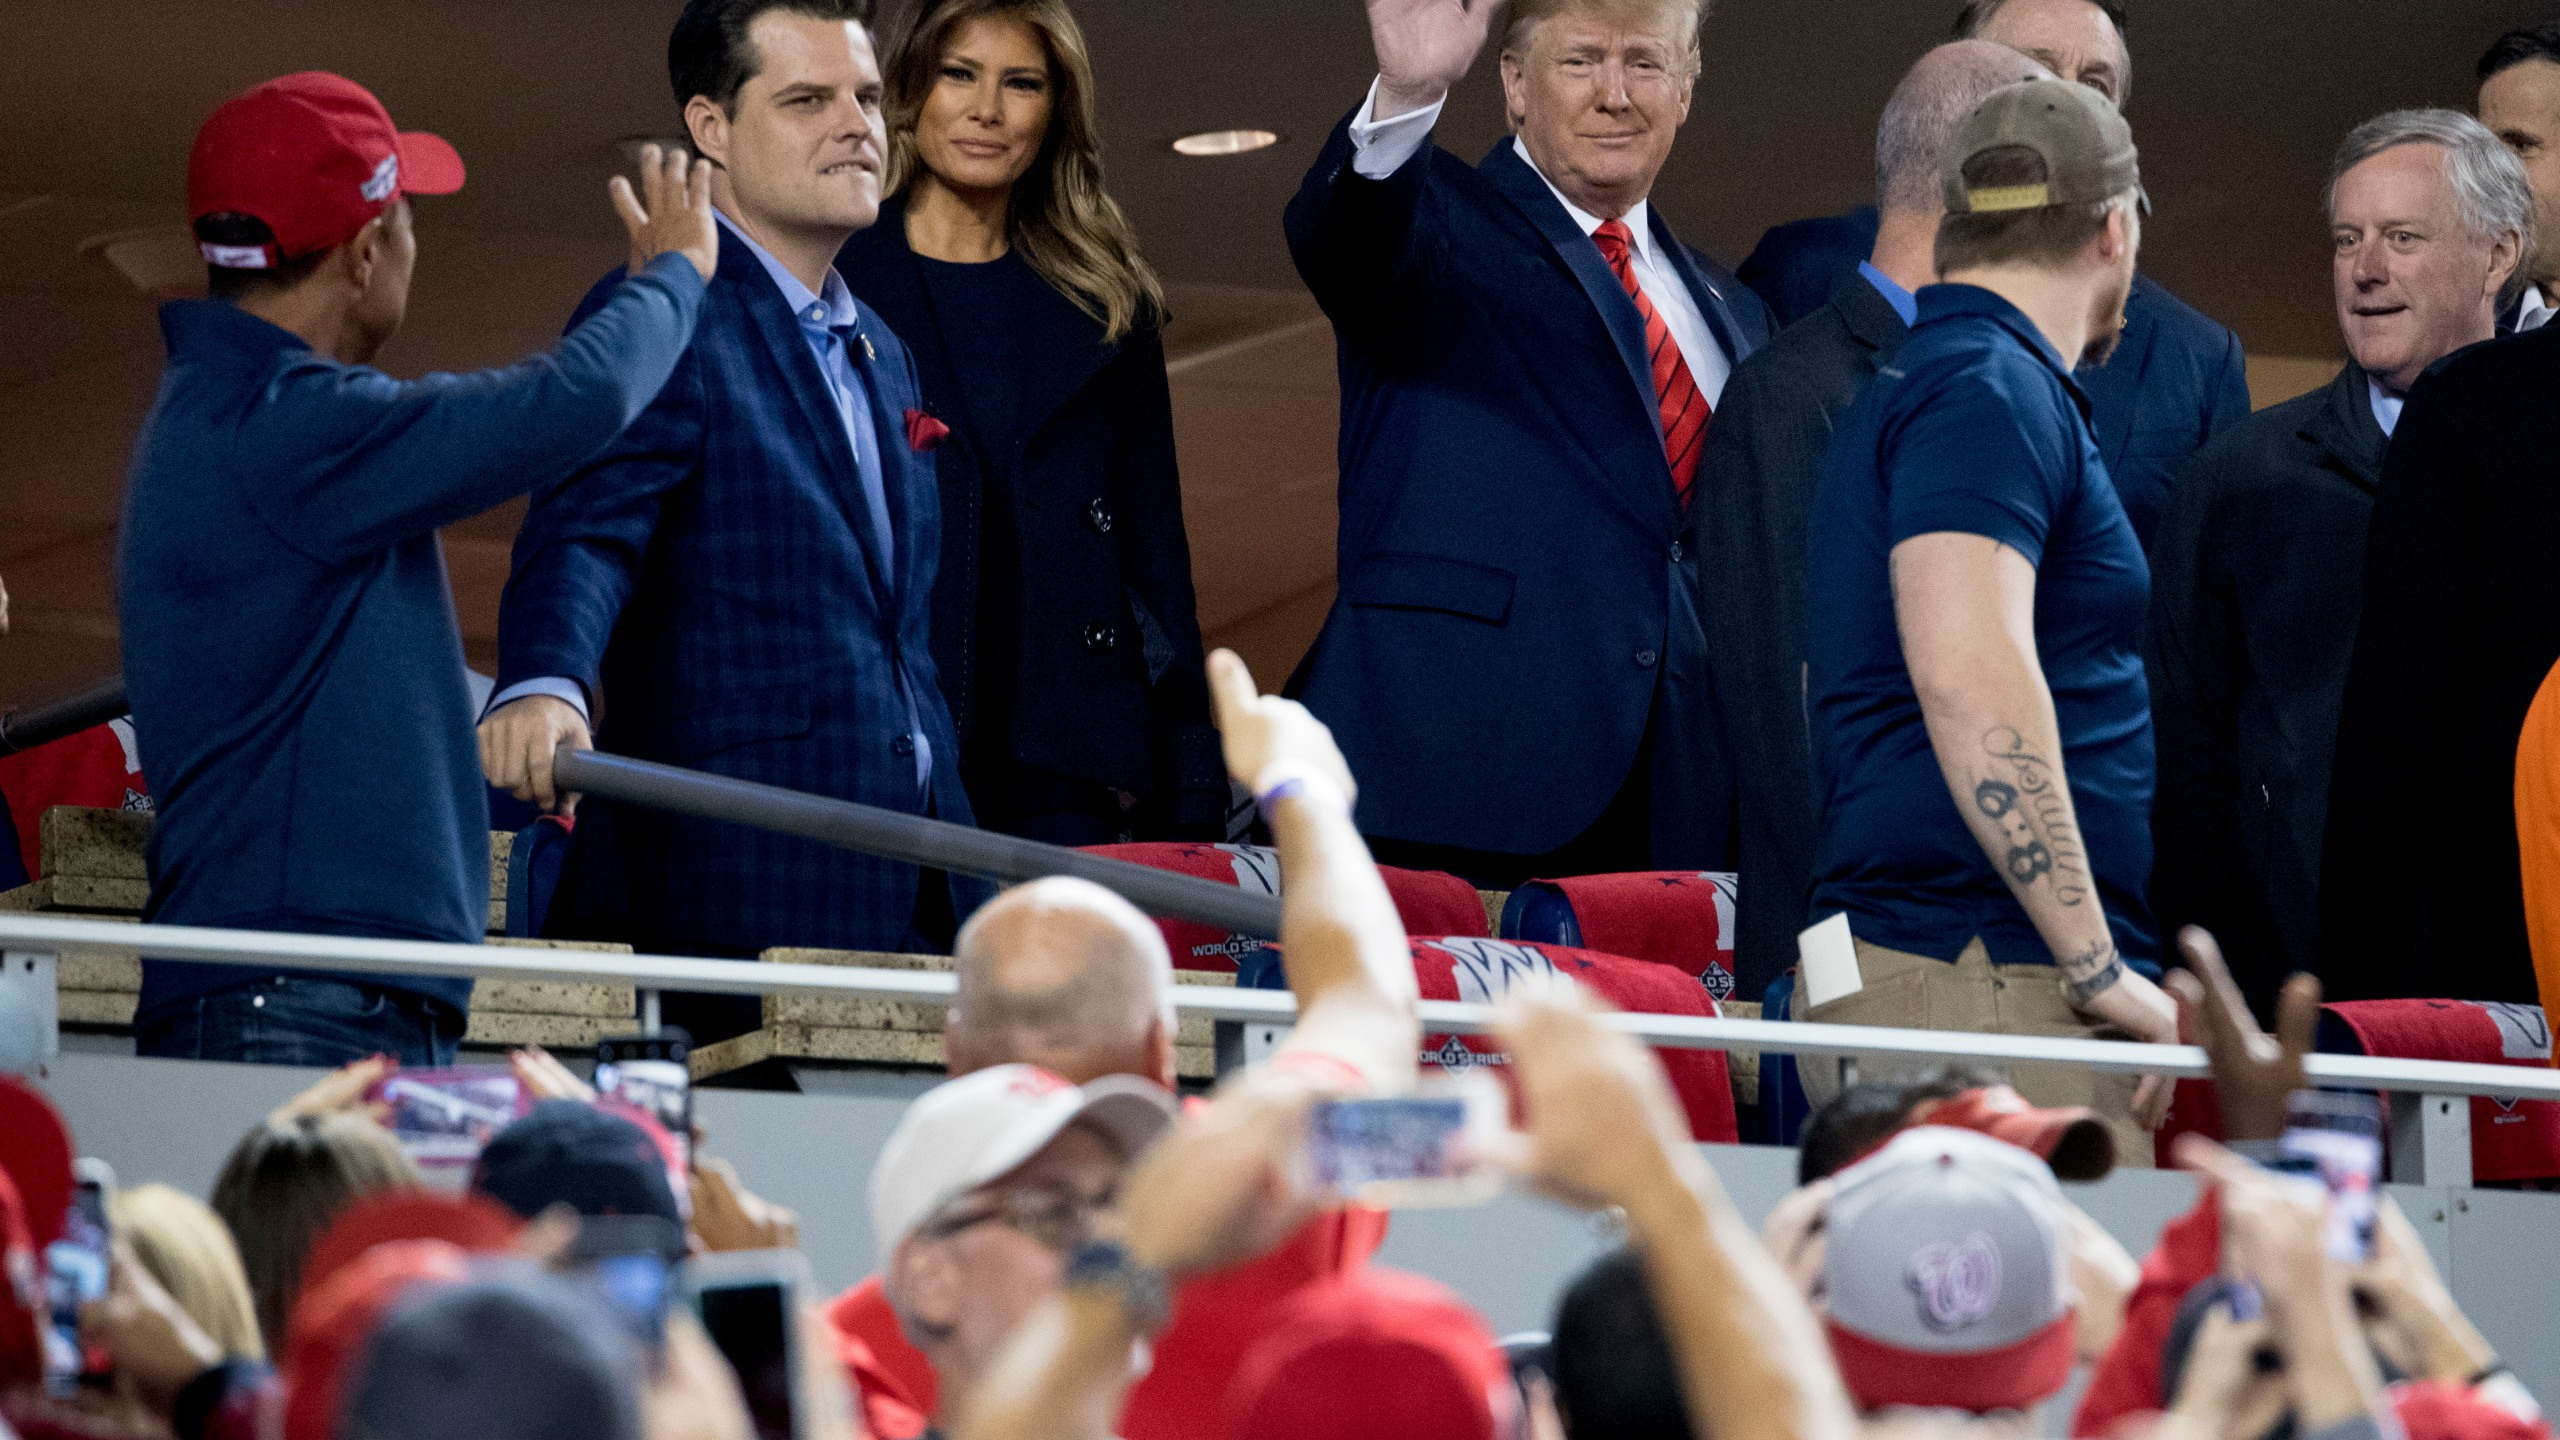 Donald Trump, Melania Trump, Matt Gaetz, Mark Meadows